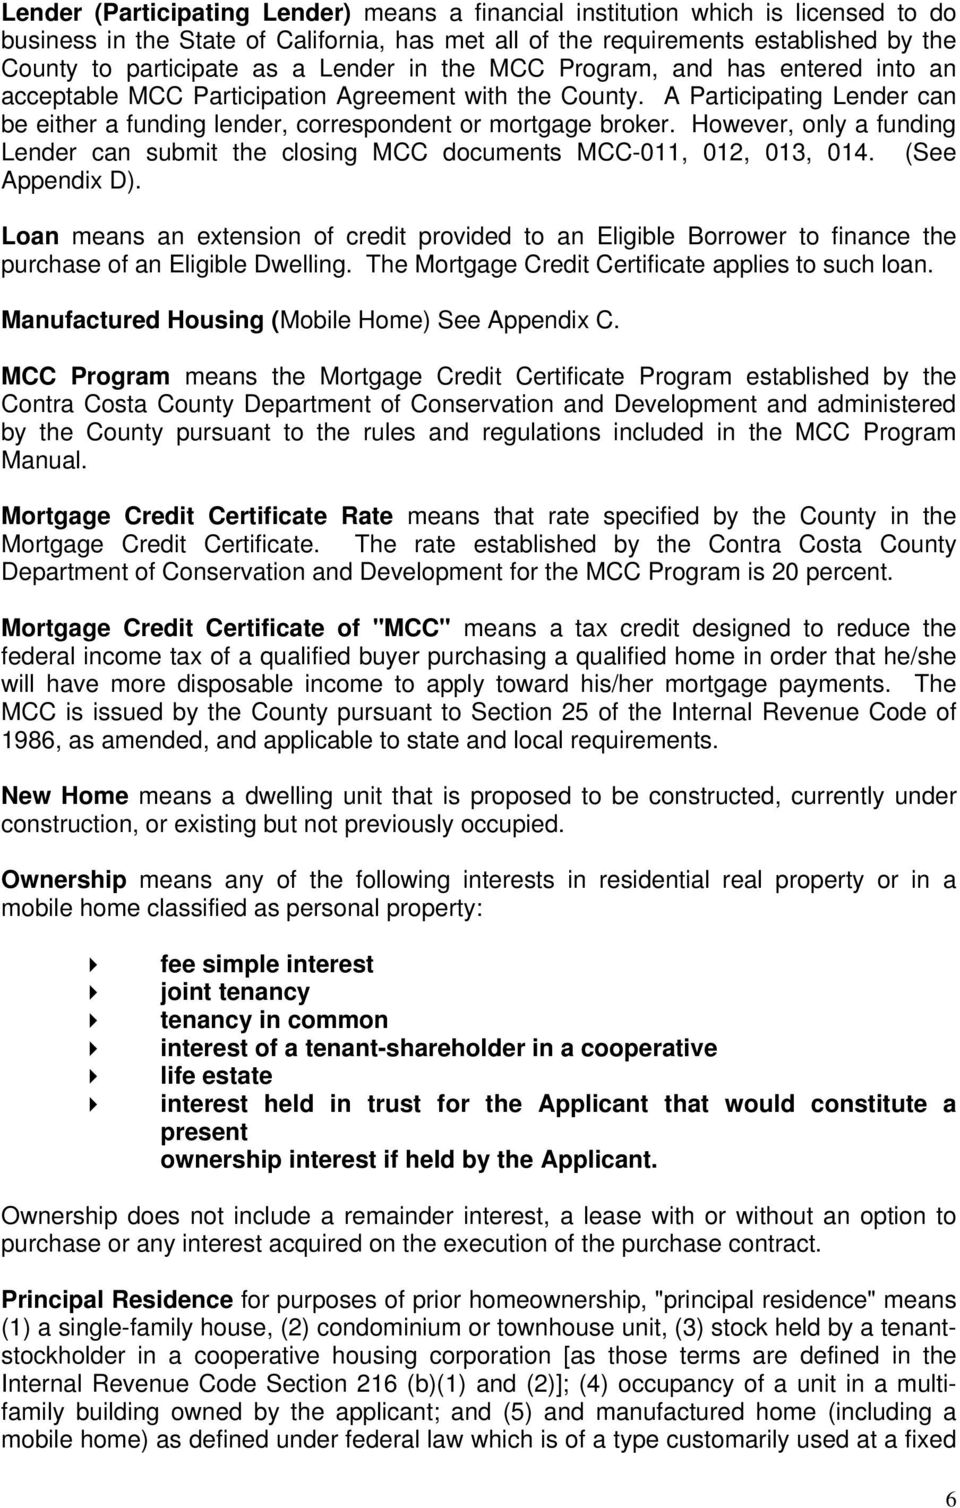 Mortgage Credit Certificate Program Table Of Contents Pdf